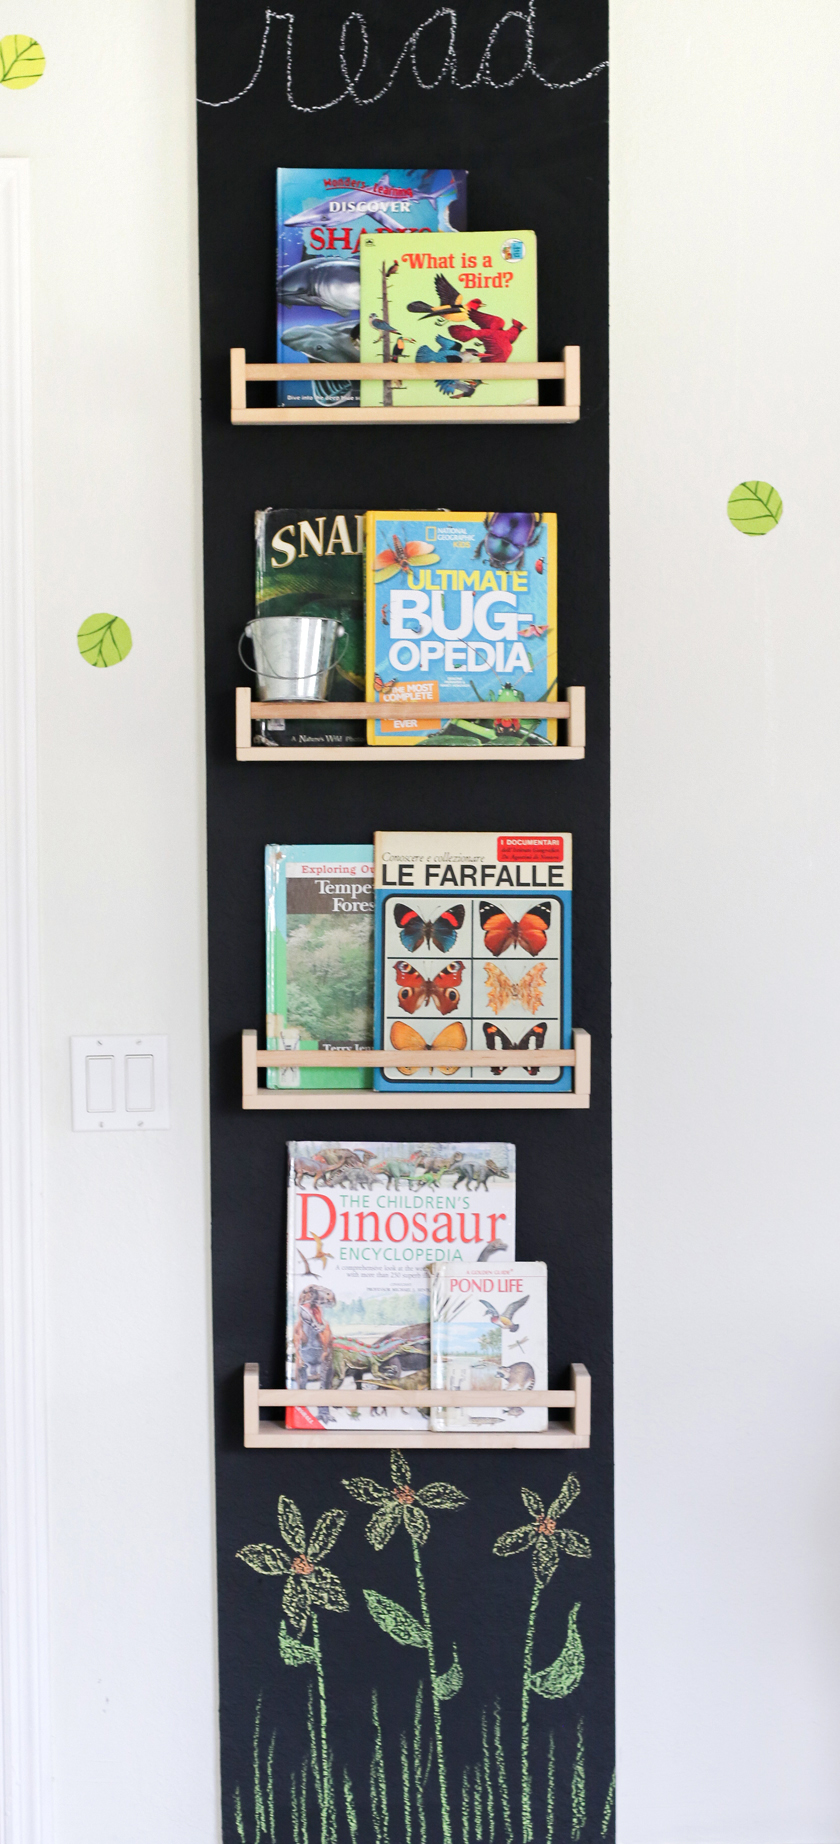 reading wall with cheap spice racks for books on a chalkboard background